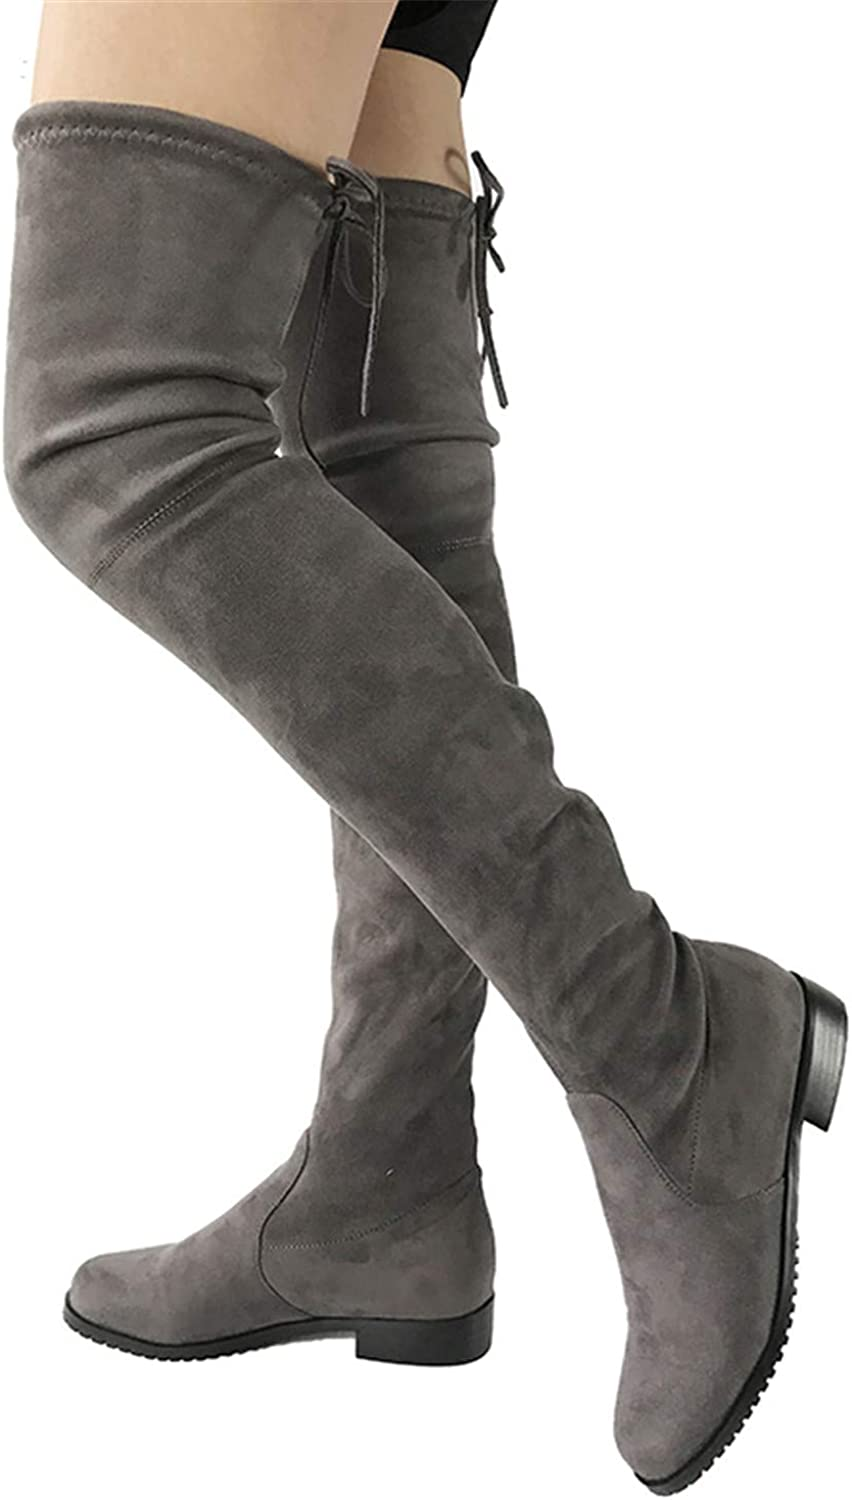 Leroyca Thigh High Flat Boots Women Over The Knee Boots Comfort Fall Winter Faux Suede Boots Fashion shoes Woman